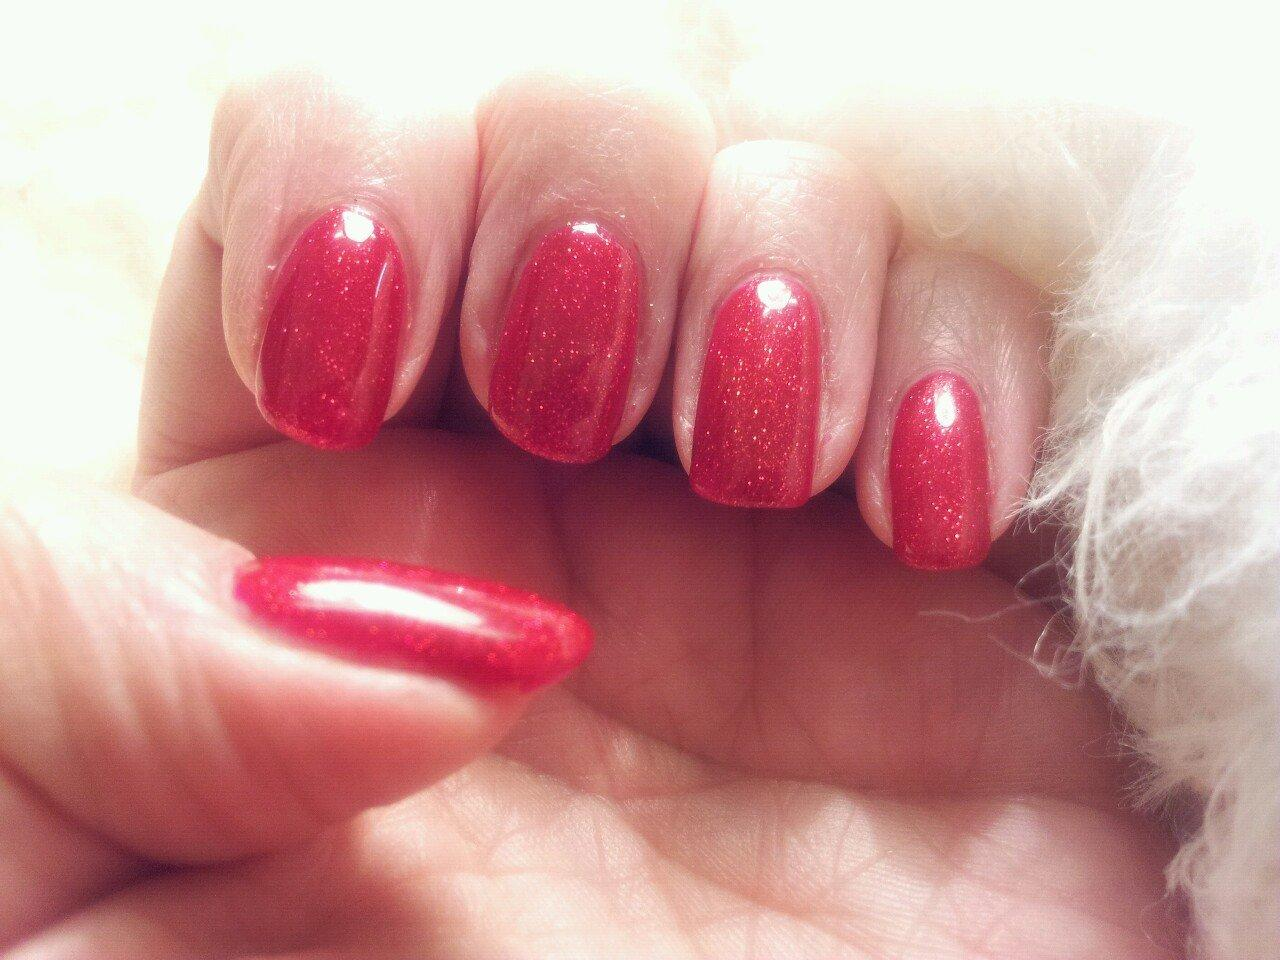 Few simple steps for making your own shellac nails at home solutioingenieria Images